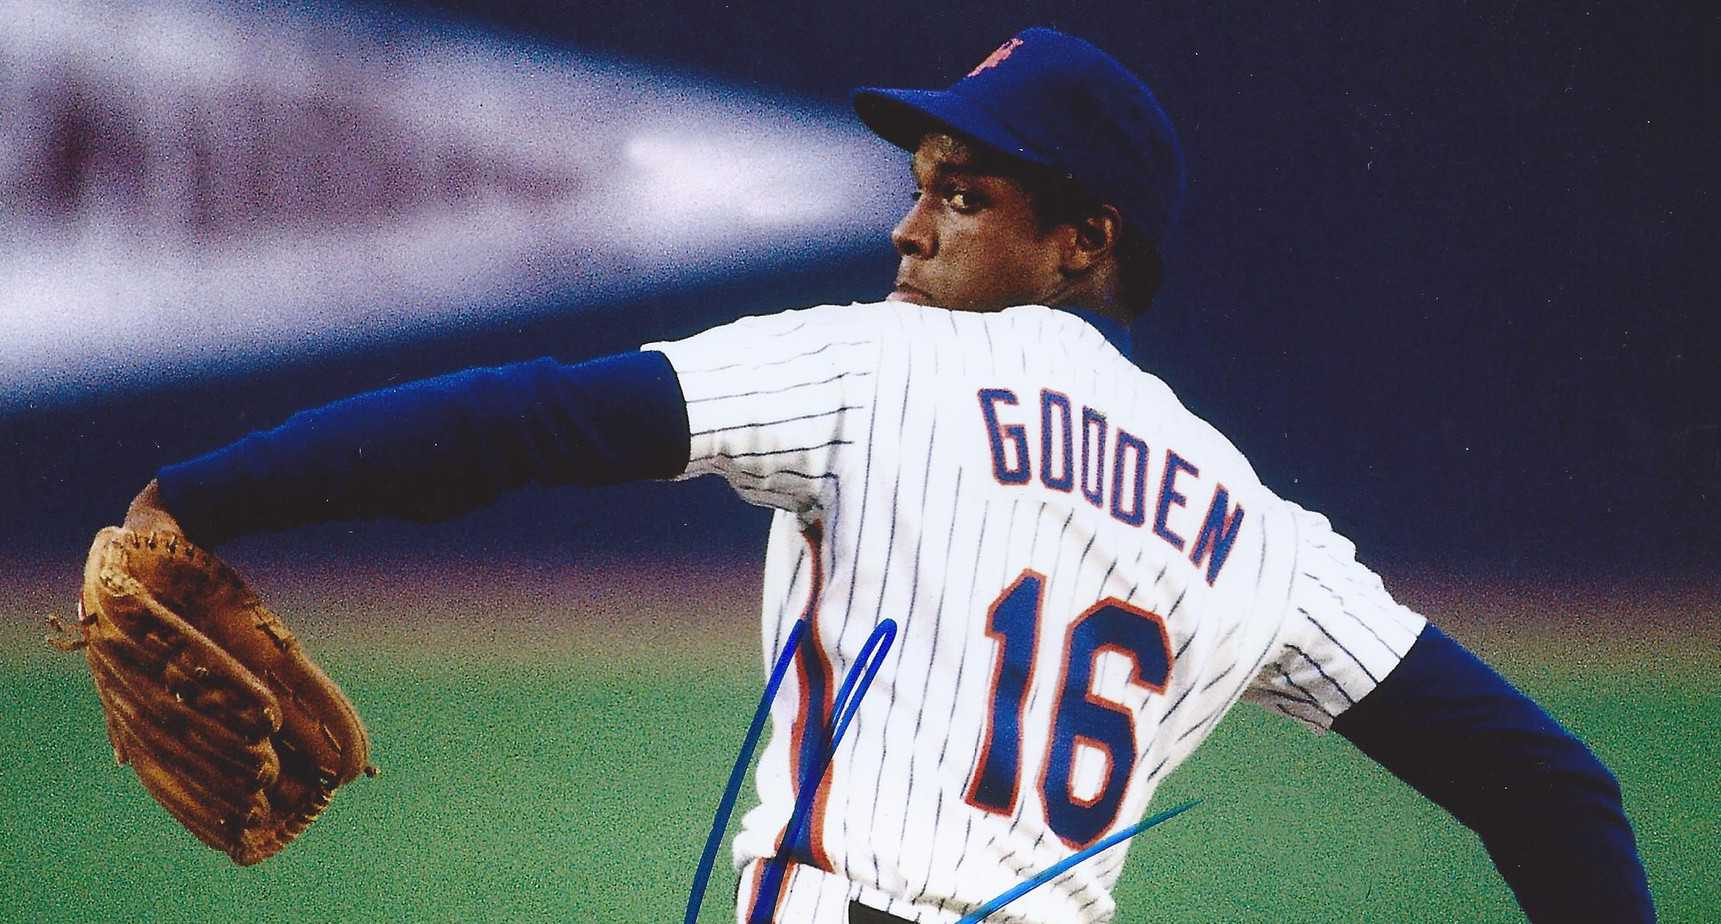 Doc Gooden was a wizard, at least according to the Mountain Goats